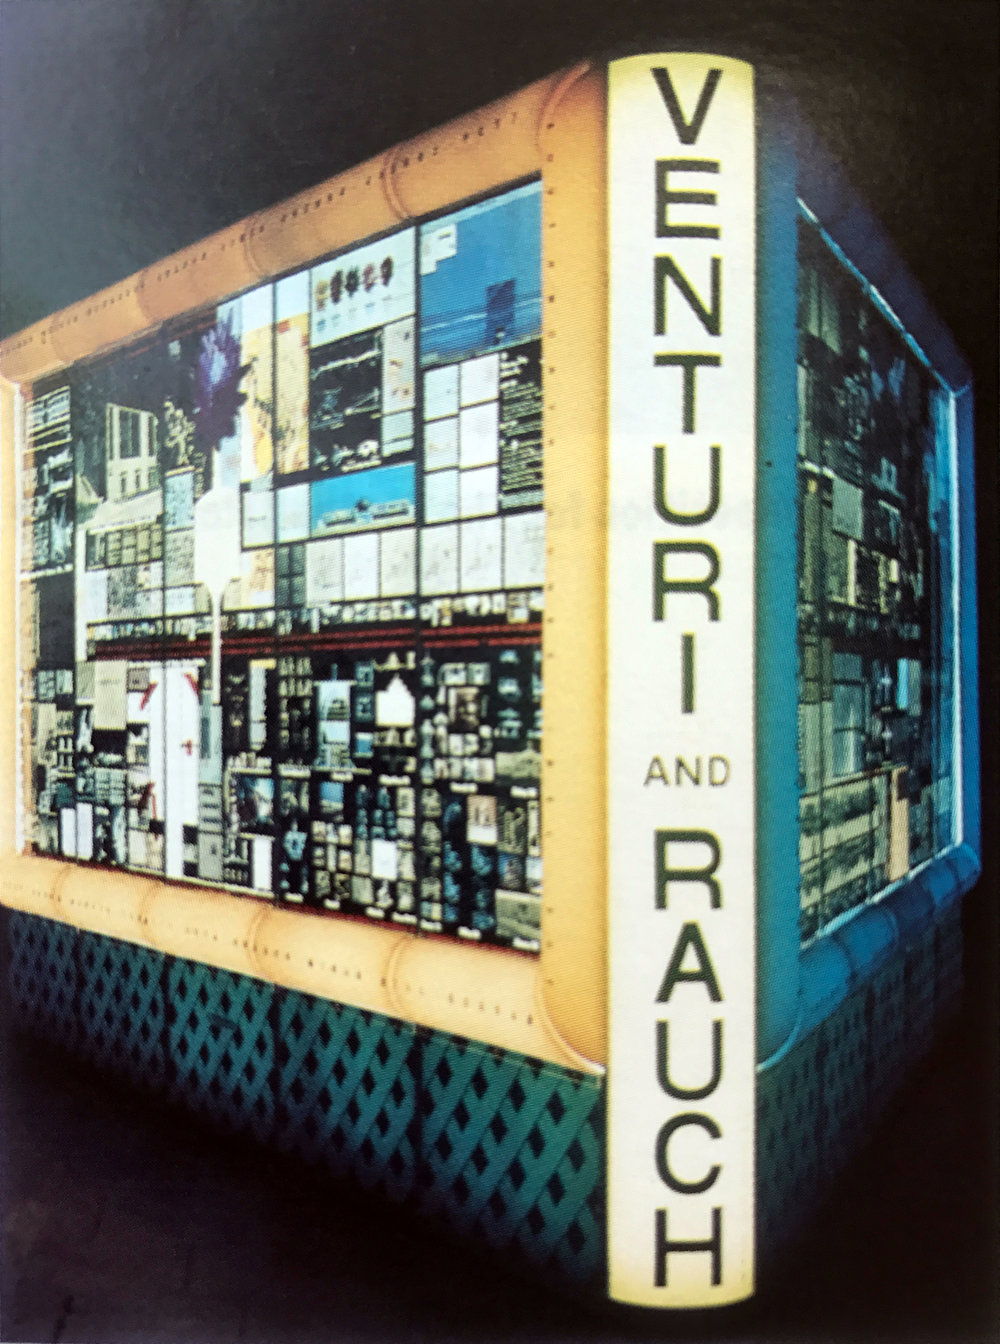 Venturi and Rauch, Architects and Planners Retrospective. Whitney Museum of American Art. 1972. Venturi, Robert and Denise Scott Brown.  Architecture as Signs and Symbols: For A Mannerist Time . Cambridge: Belnap Press, 2004.